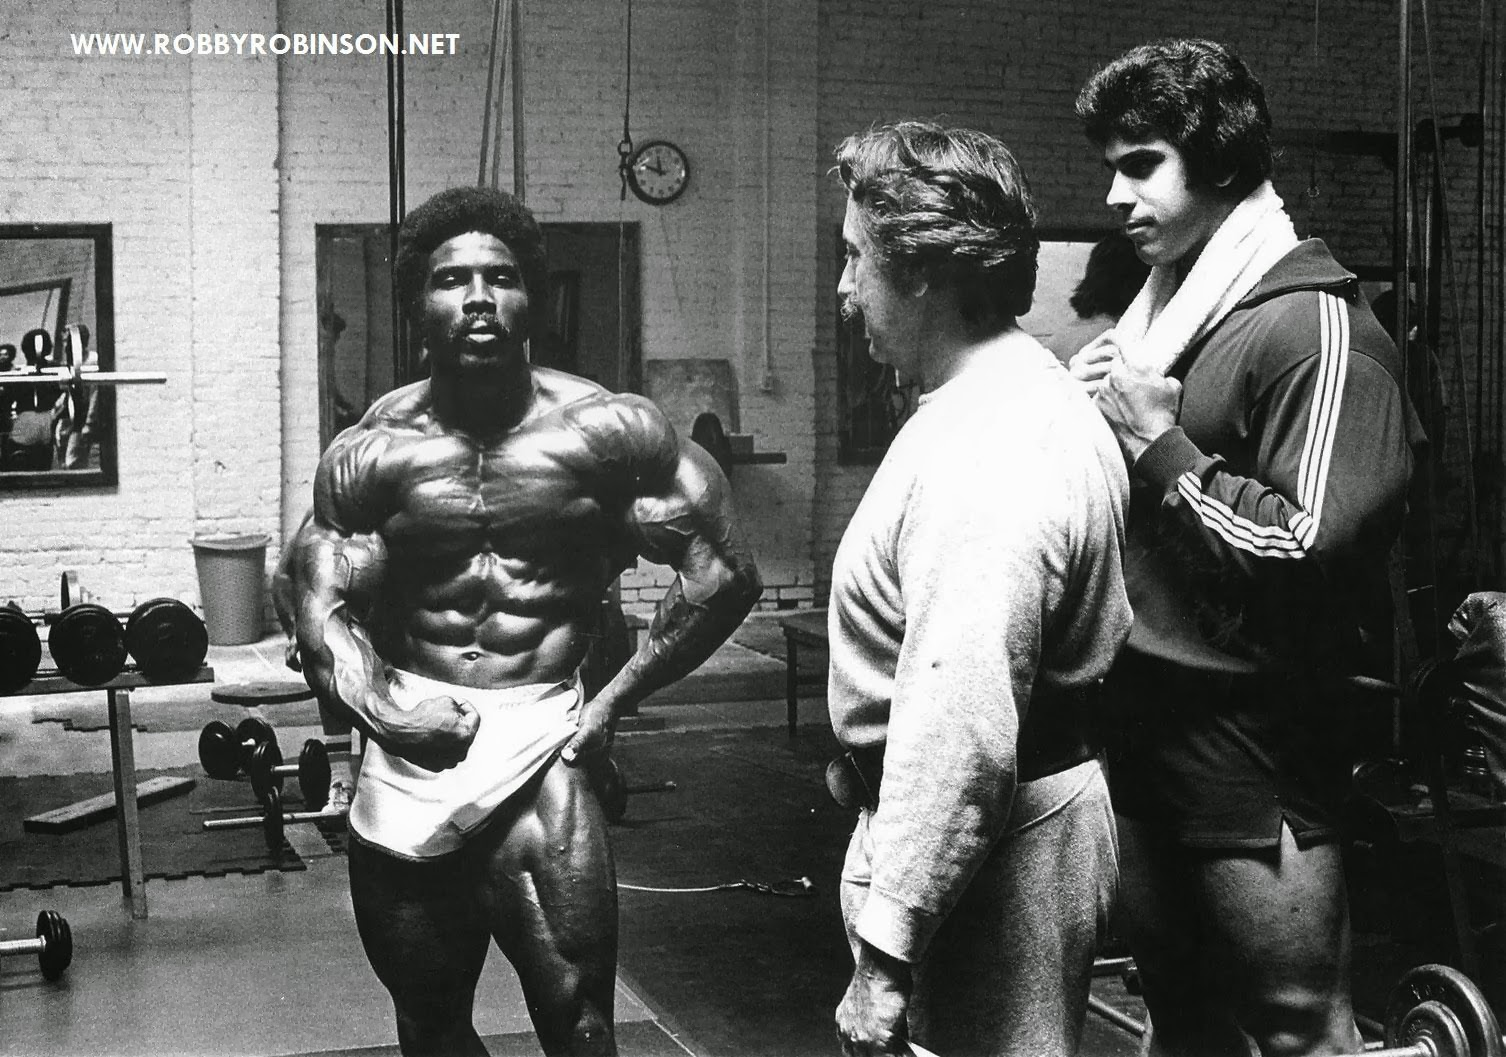 """""""The Black Prince"""" Robby Robinson, the """"Hulk"""" Lou Ferrigno and """"The Godfather of Bodybuilding"""" Joe Weider - training and posing workout at Gold's gym, Venice back in '70s -- read about RR's training and life experience, about other legends of Golden Era of bodybuilding and what really happened behind the scenes of Weider's empire - in RR's BOOK """"The BLACK PRINCE; My Life in Bodybuilding: Muscle vs. Hustle"""" ● www.robbyrobinson.net/books.php ●"""